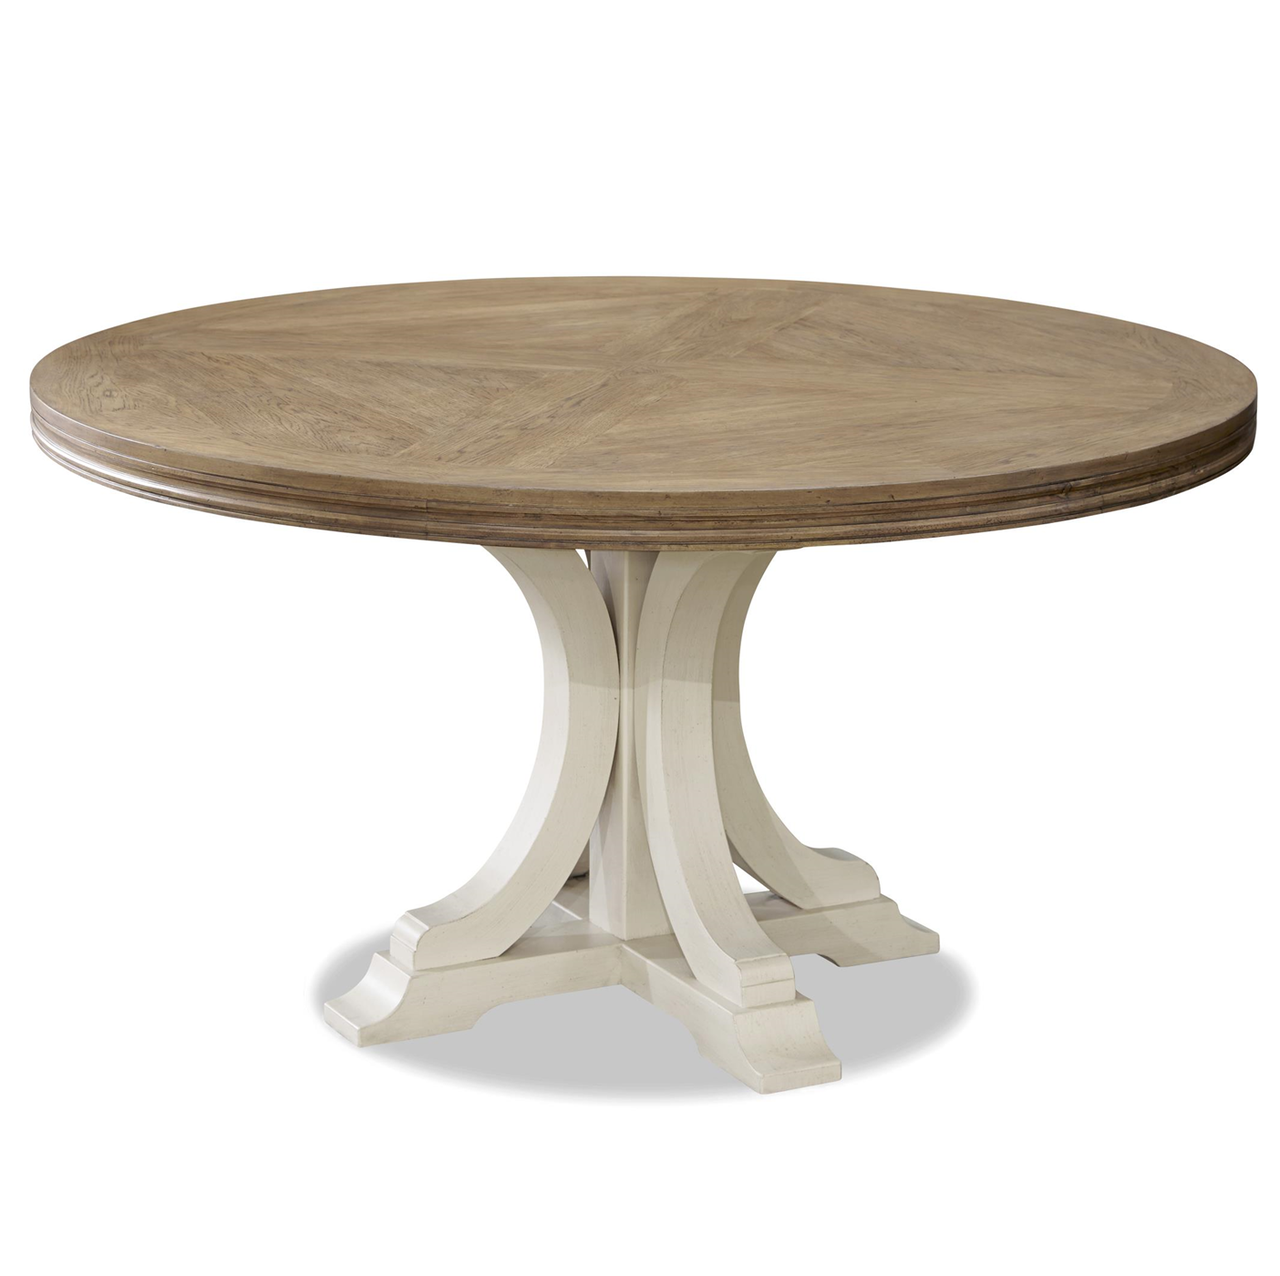 White Wood Dining Room Table: French Modern White Wood Pedestal Round Dining Table 58